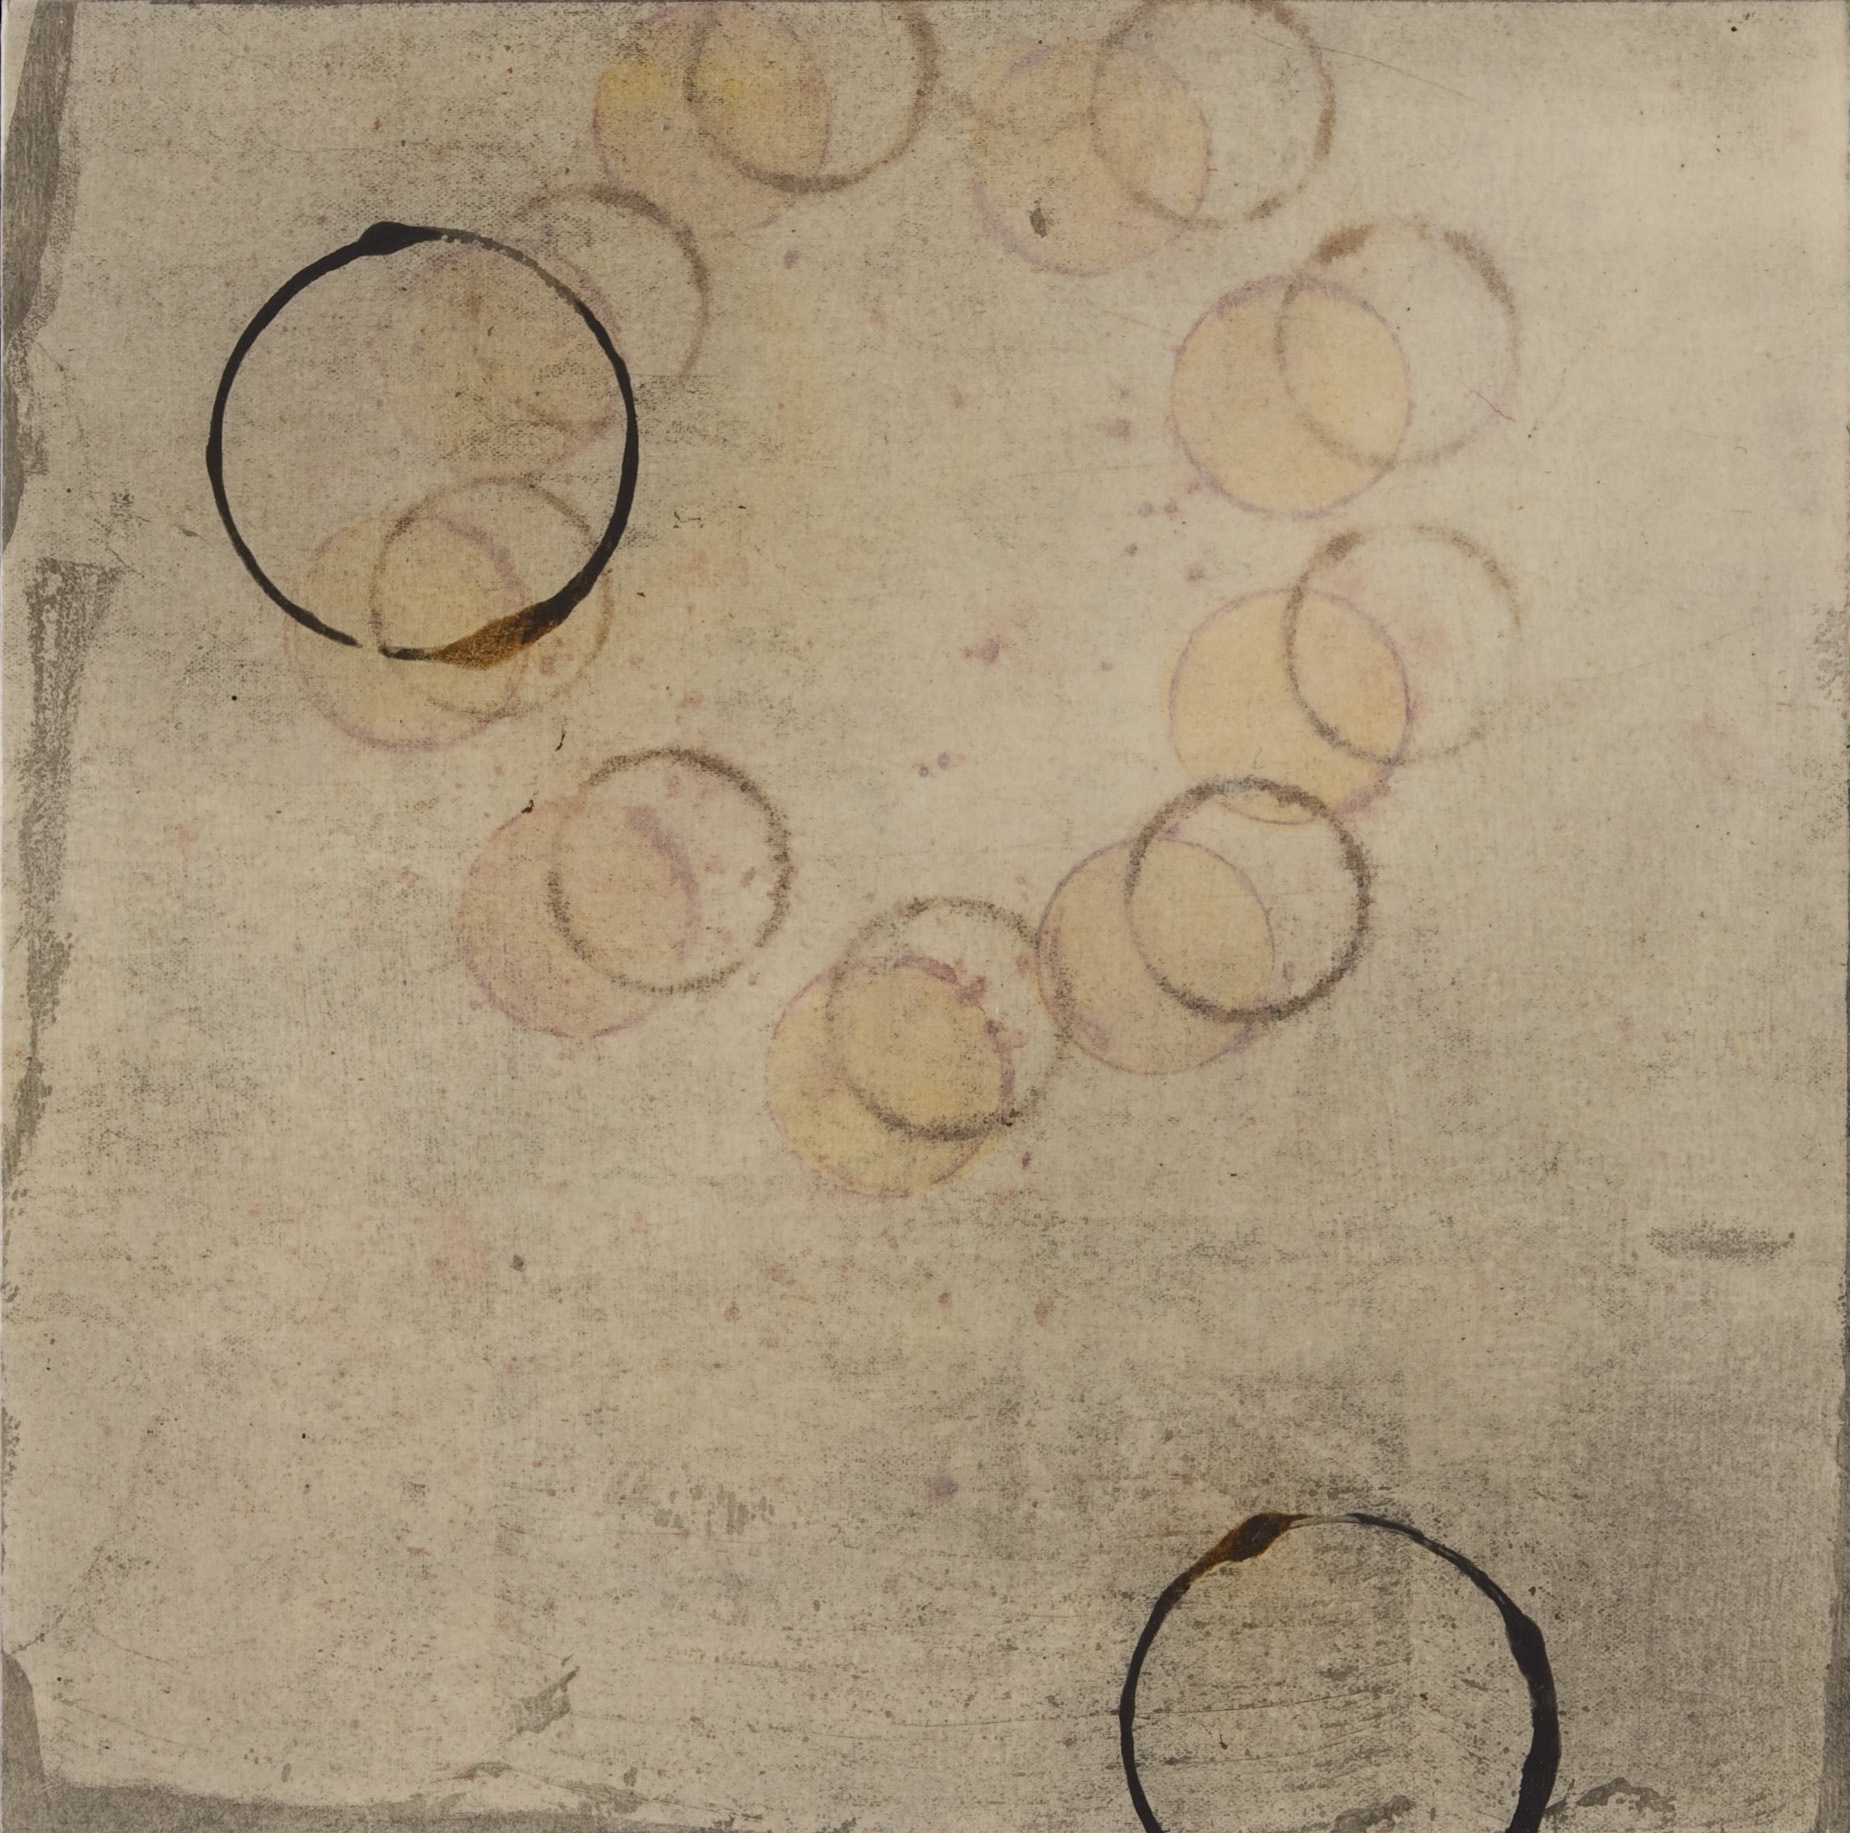 Kim Kopp   Star Circle , 2008  Graphite and dry pigments on Japanese papers over panel